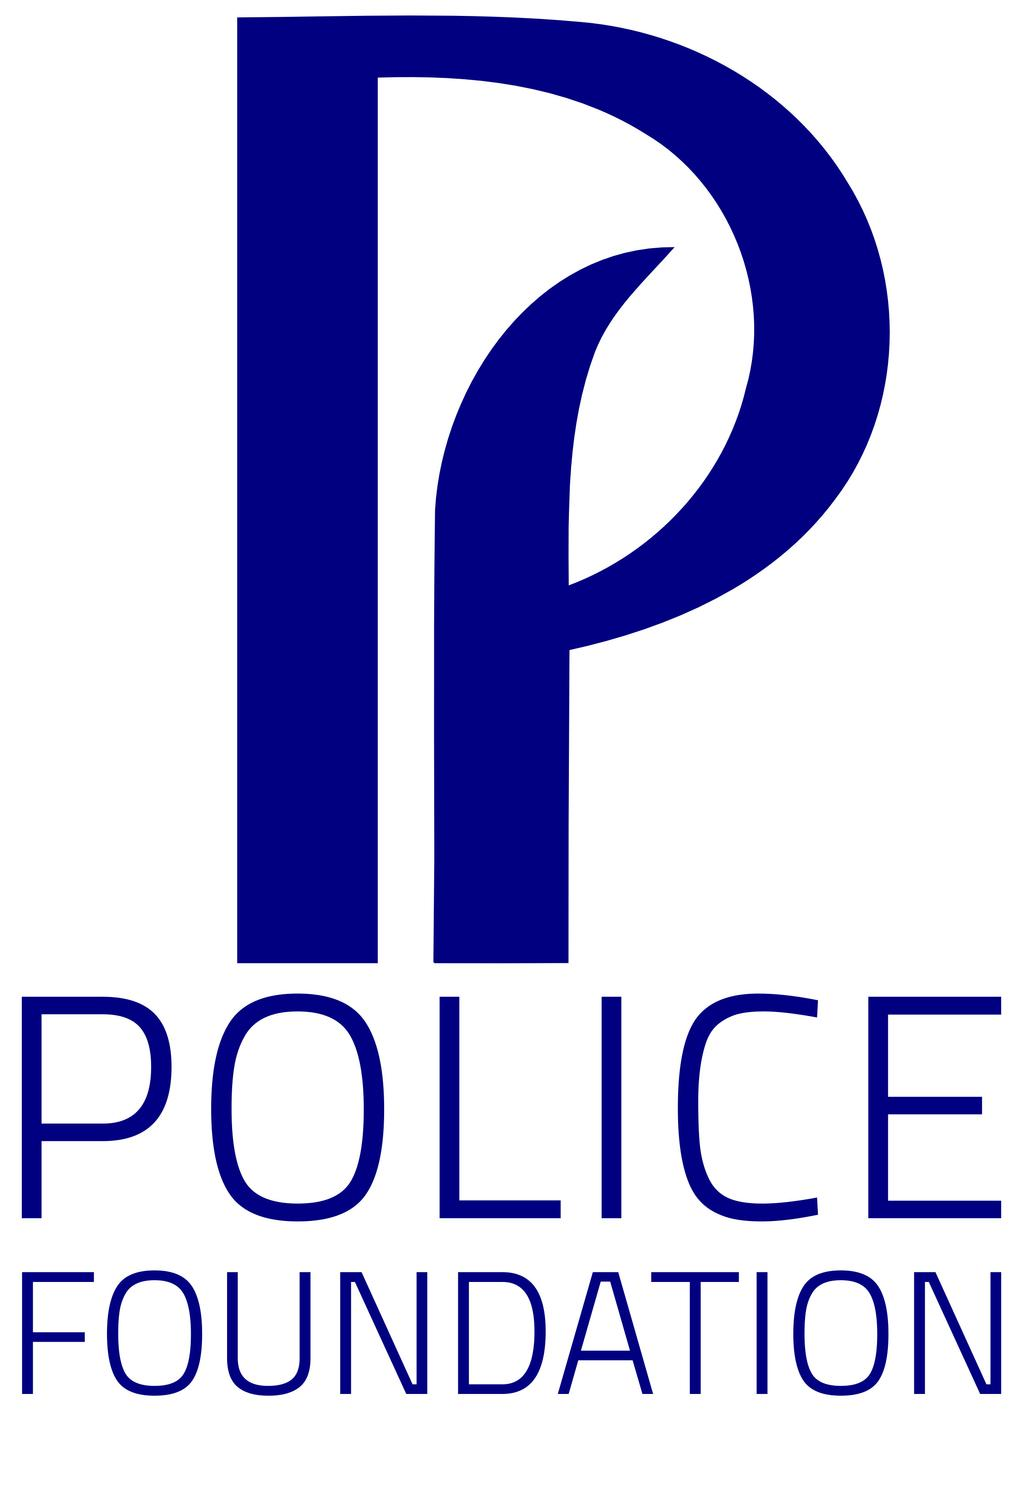 REQUEST FOR PROPOSALS: NON-PROFIT GRANT WRITING SERVICES About the Police Foundation: We are a national non-profit non-partisan organization that, consistent with its commitment to improve policing,